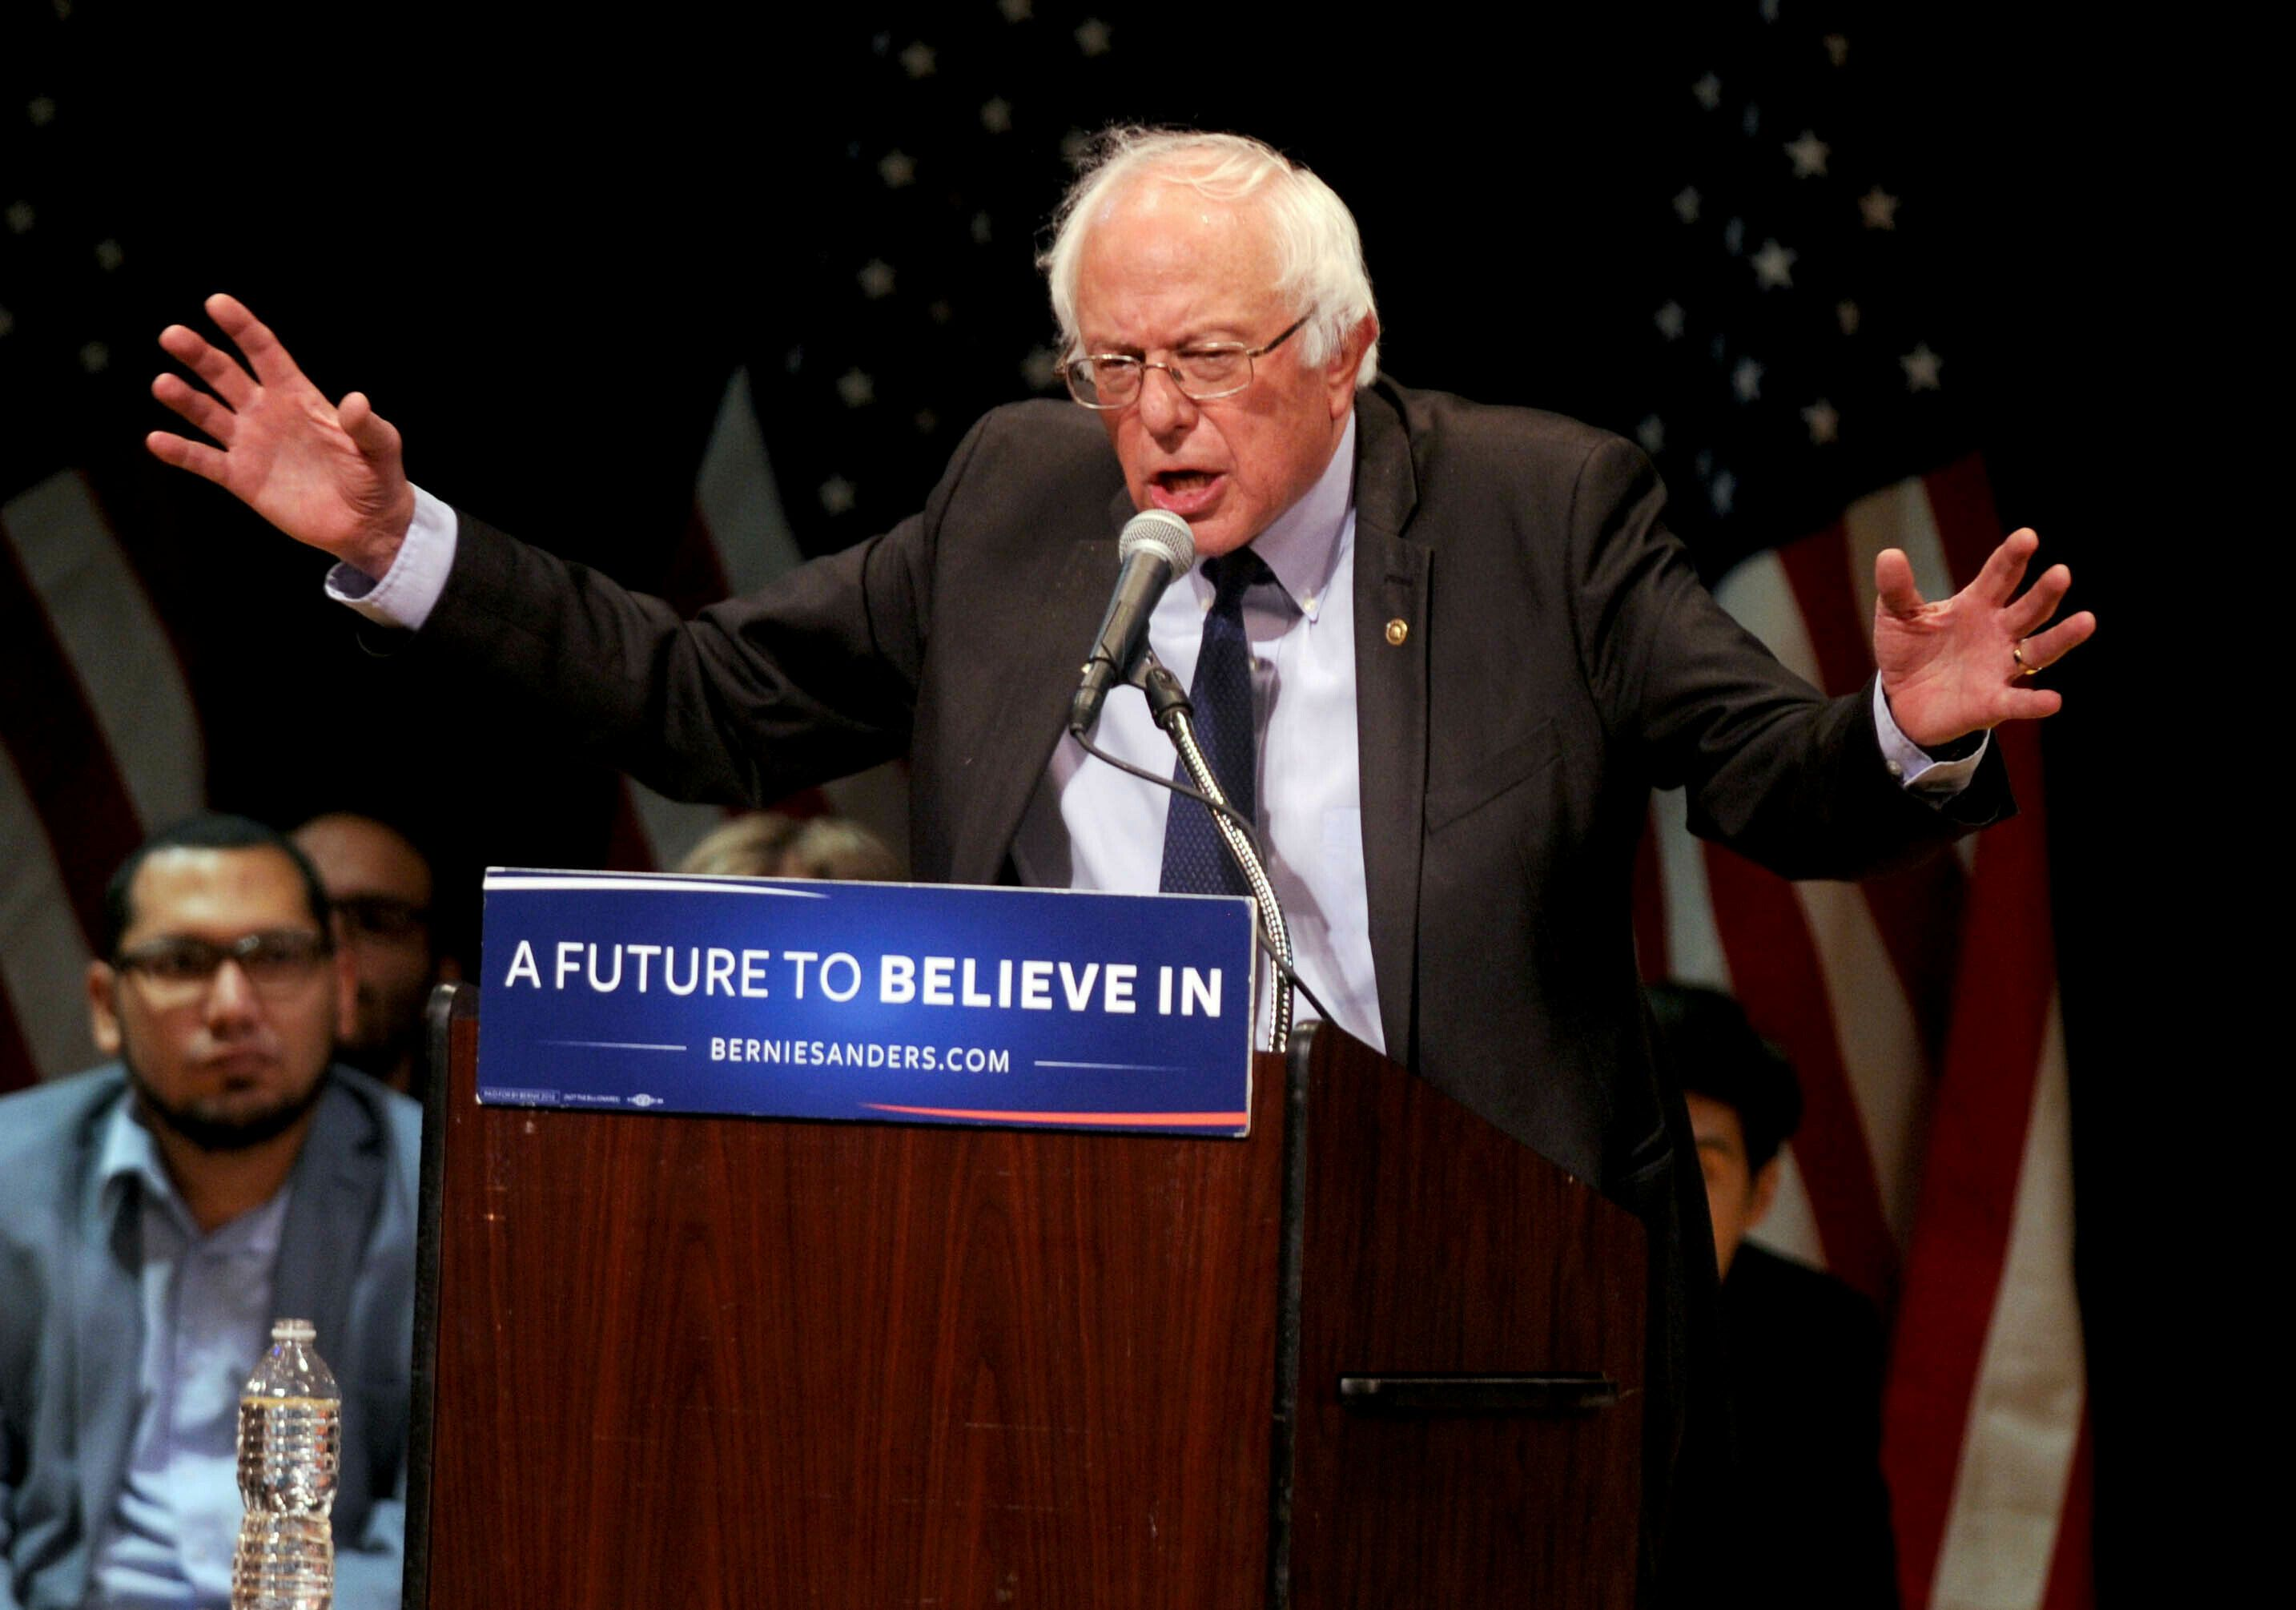 """Photo by: Dennis Van Tine/STAR MAX/IPx 6/23/16 Bernie Sanders gives his """"Where We Go From Here"""" Speech at a rally at Town Hall in New York City."""